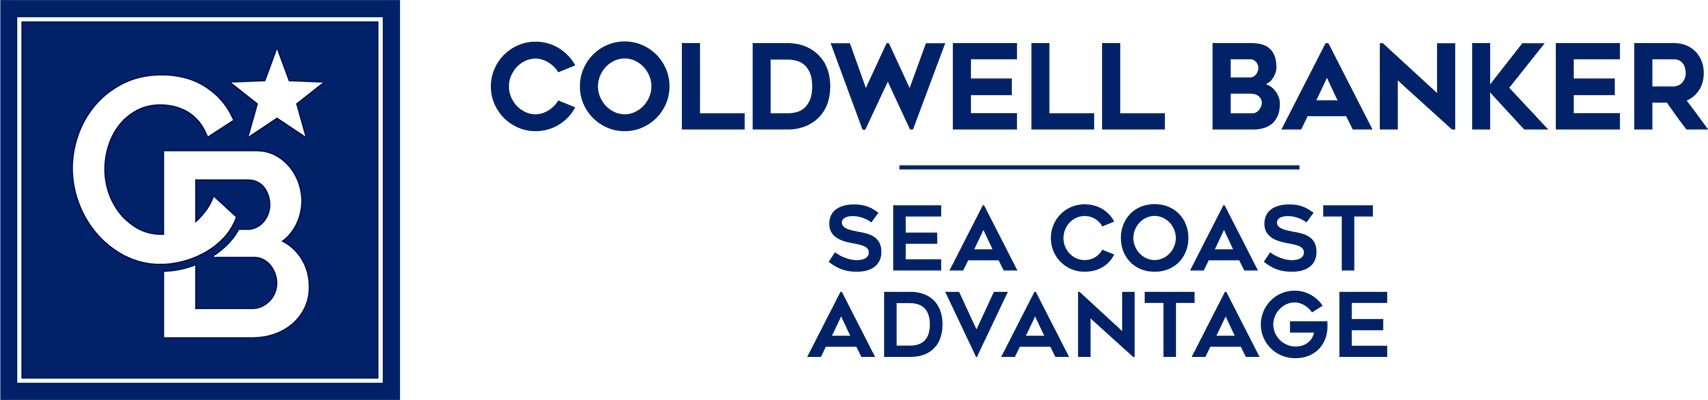 Shelly Morrow - Coldwell Banker Sea Coast Advantage Realty